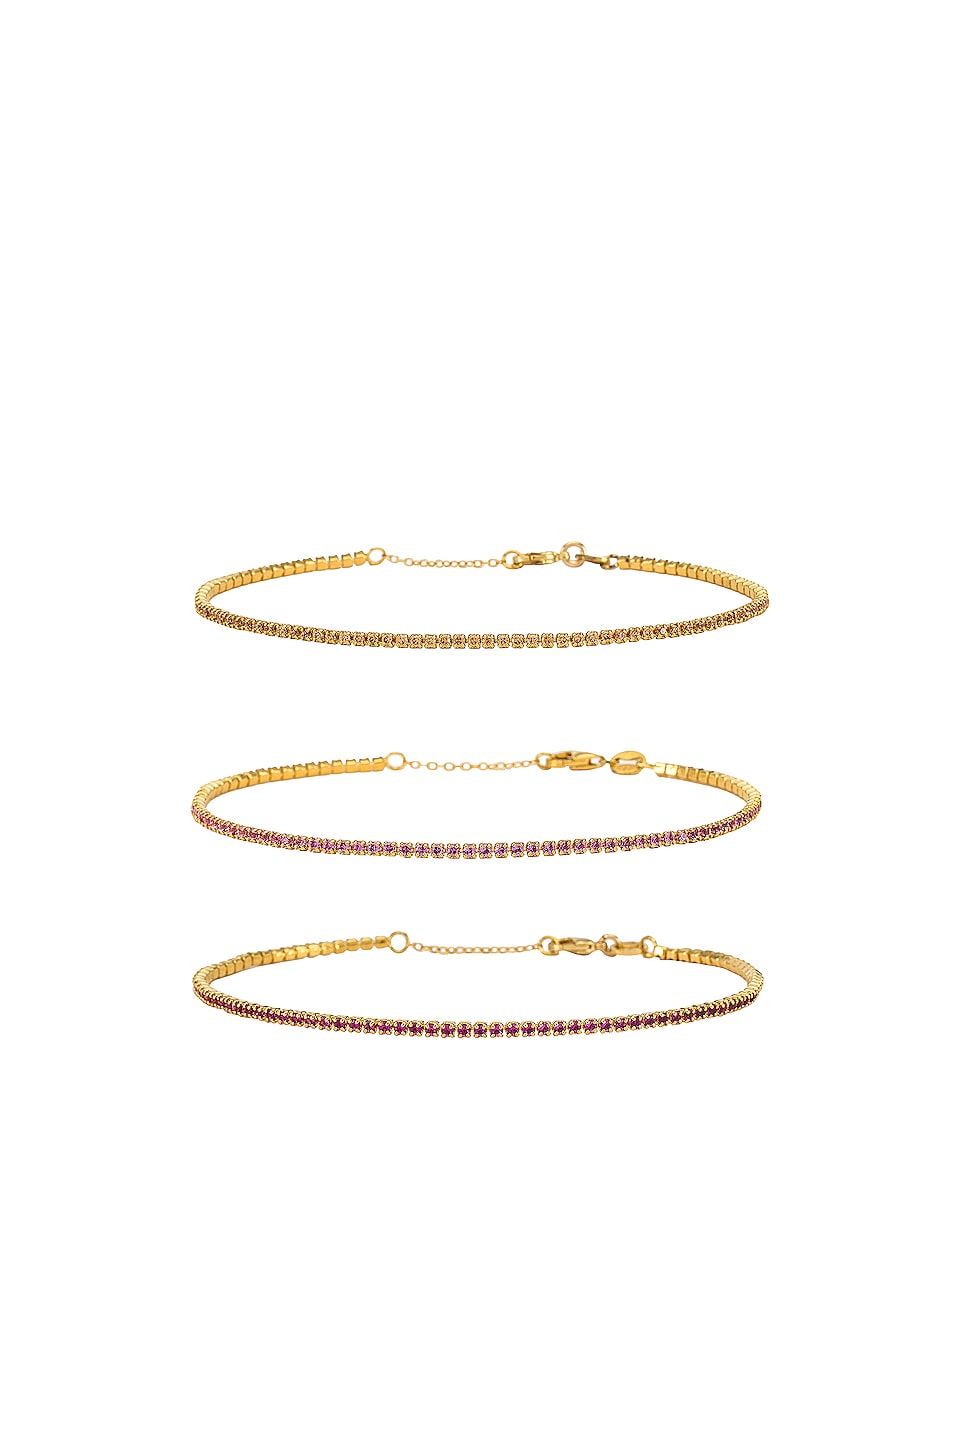 joolz by Martha Calvo Micro Tennis Bracelet Set in Champagne, Pink & Ruby